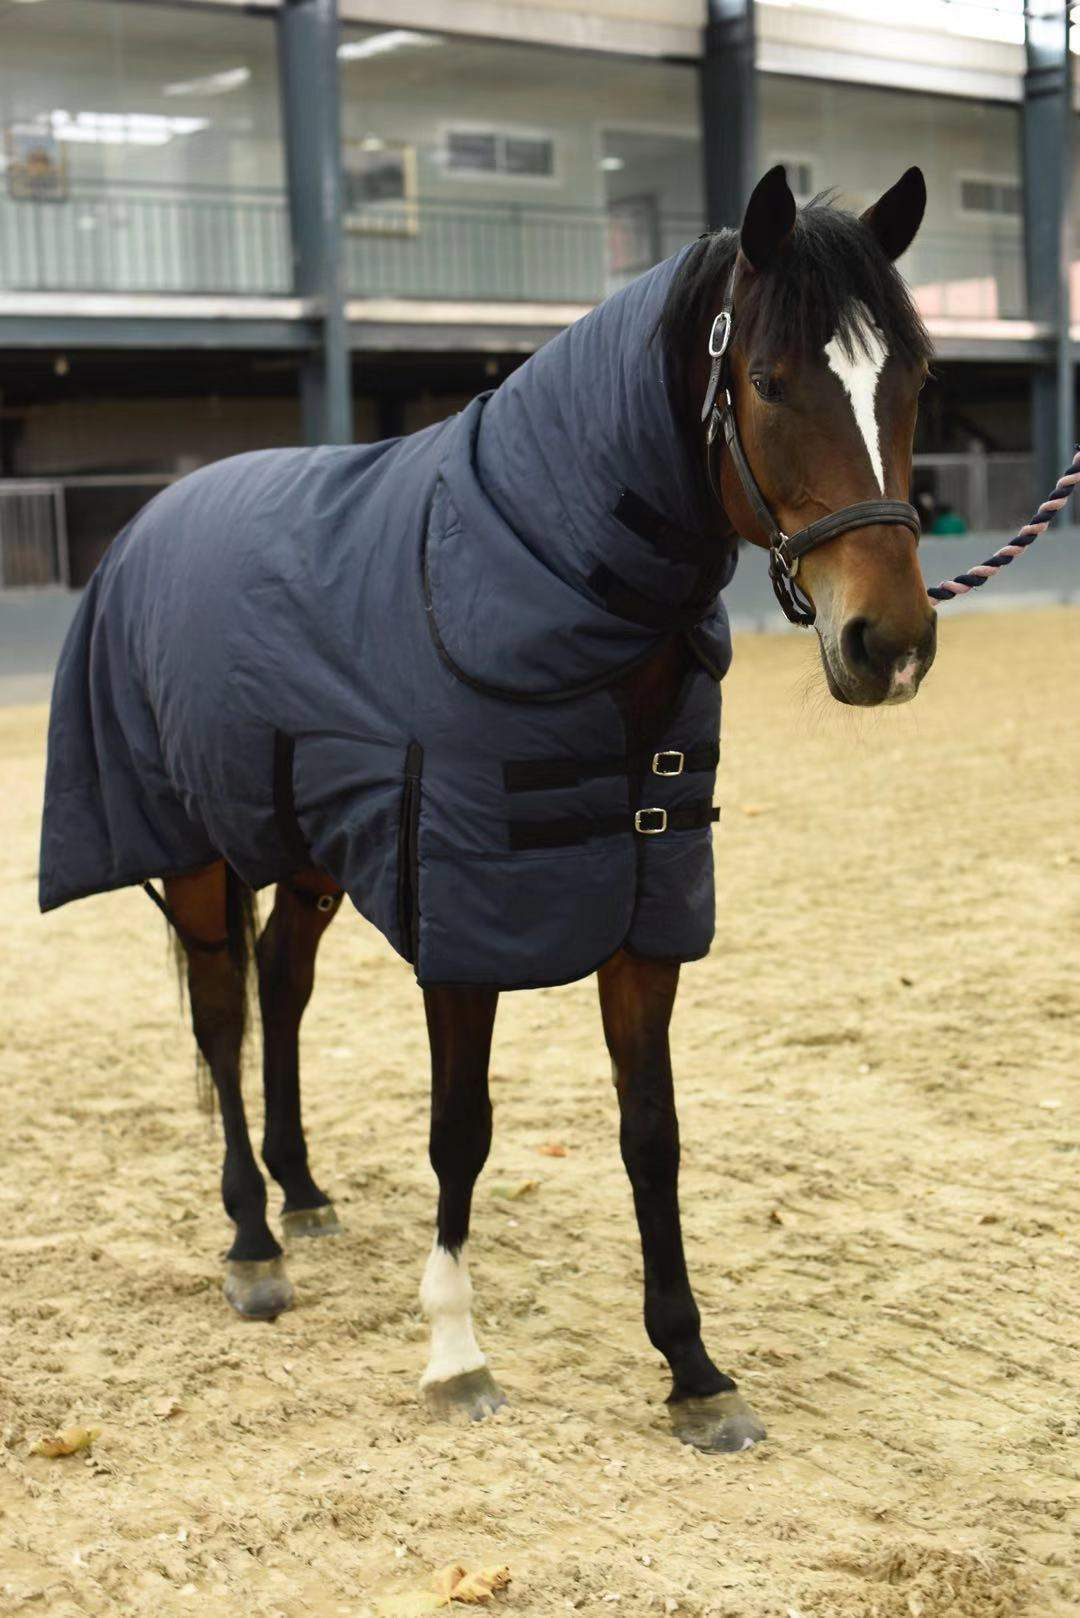 Horse Blanket Horse Sheets Winter Cotton Horse Cloth Scarf Equestrian Waterproof and Breathable Standard Neck Sheets